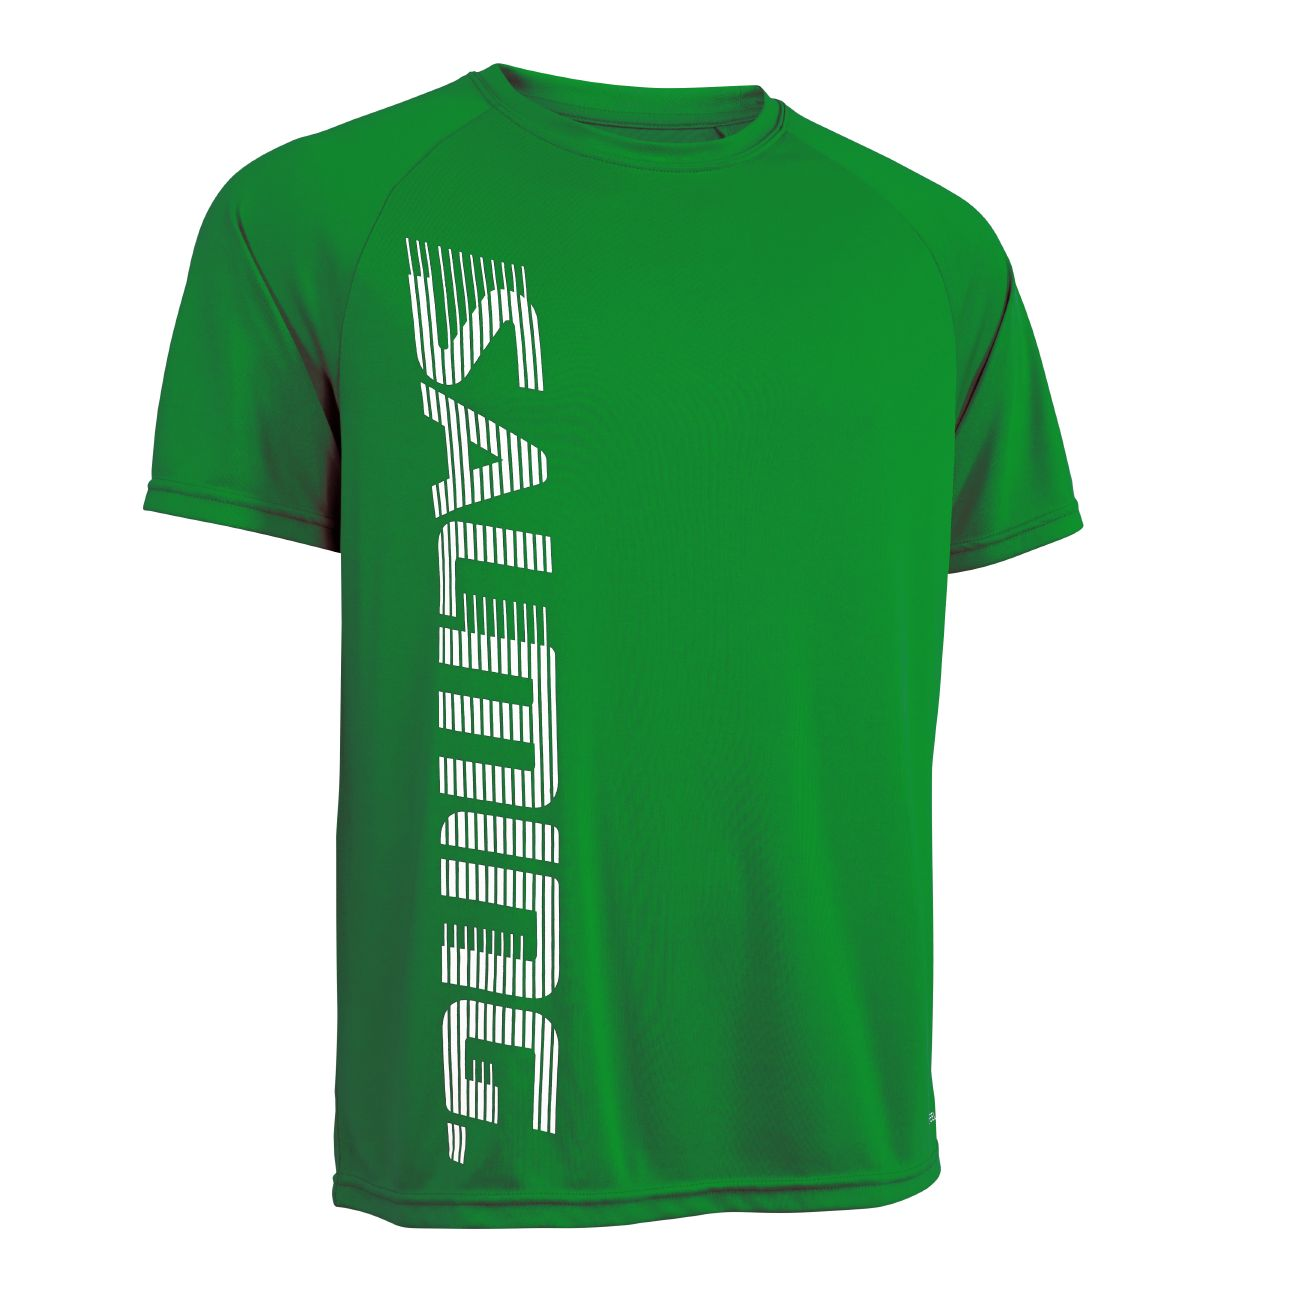 Salming Training Tee 2.0 Zelená, 128